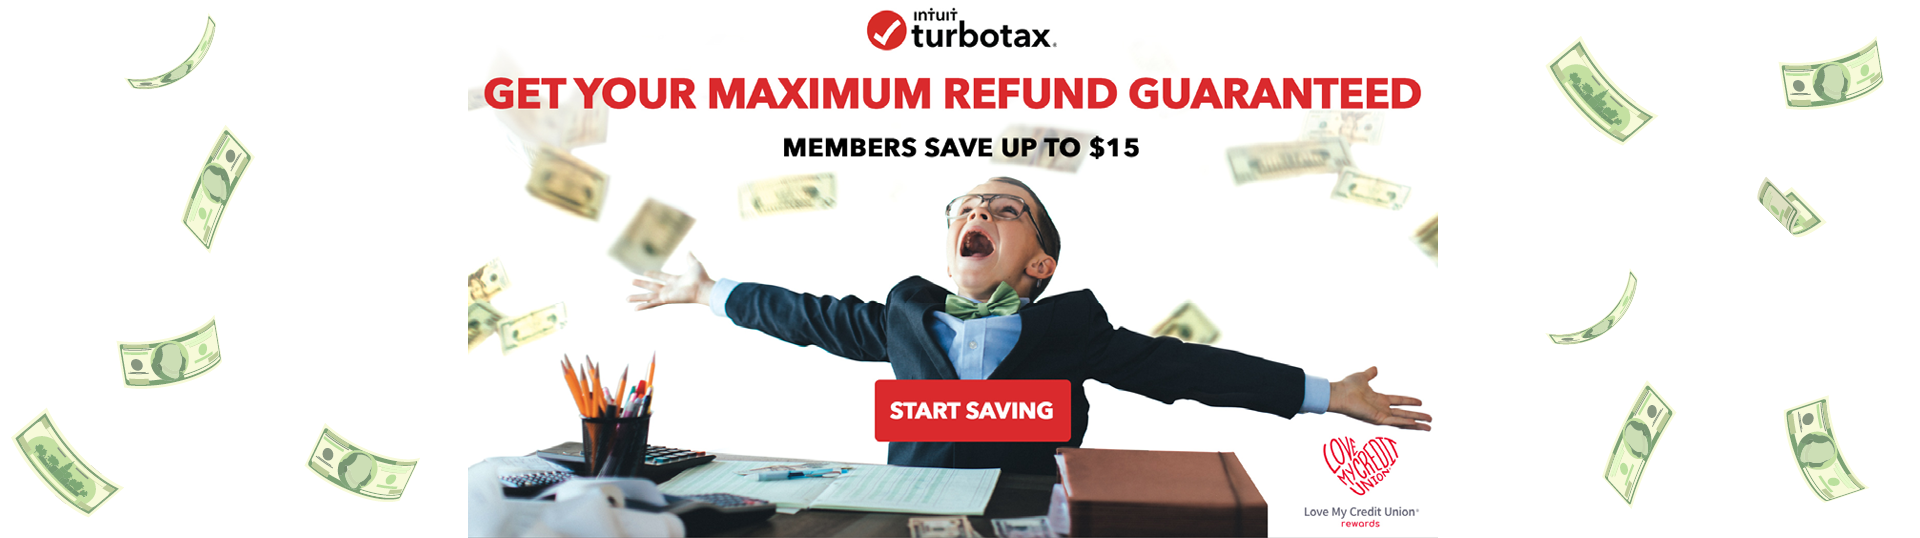 Turbo Tax Maximum Refund